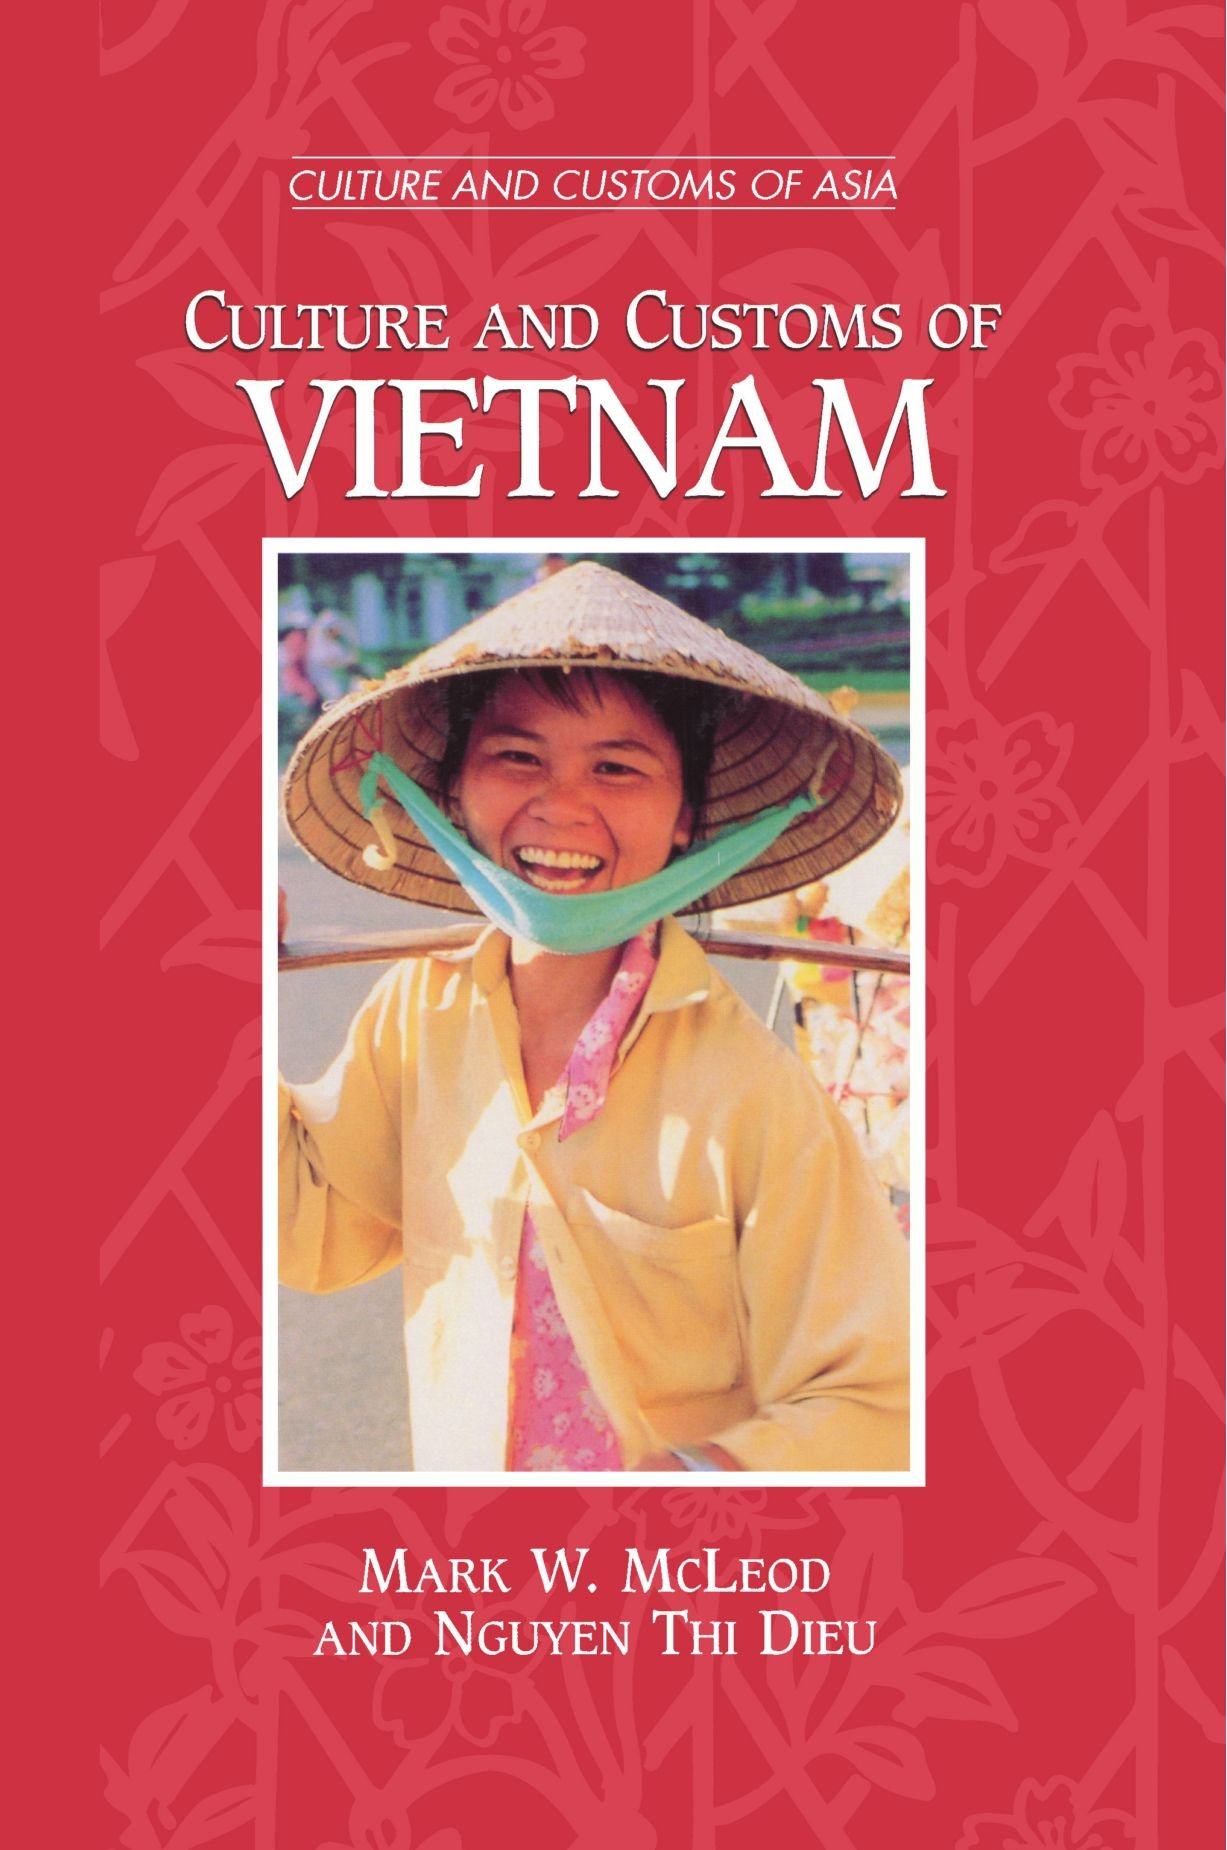 Customs And Cultures Culture And Customs of Vietnam